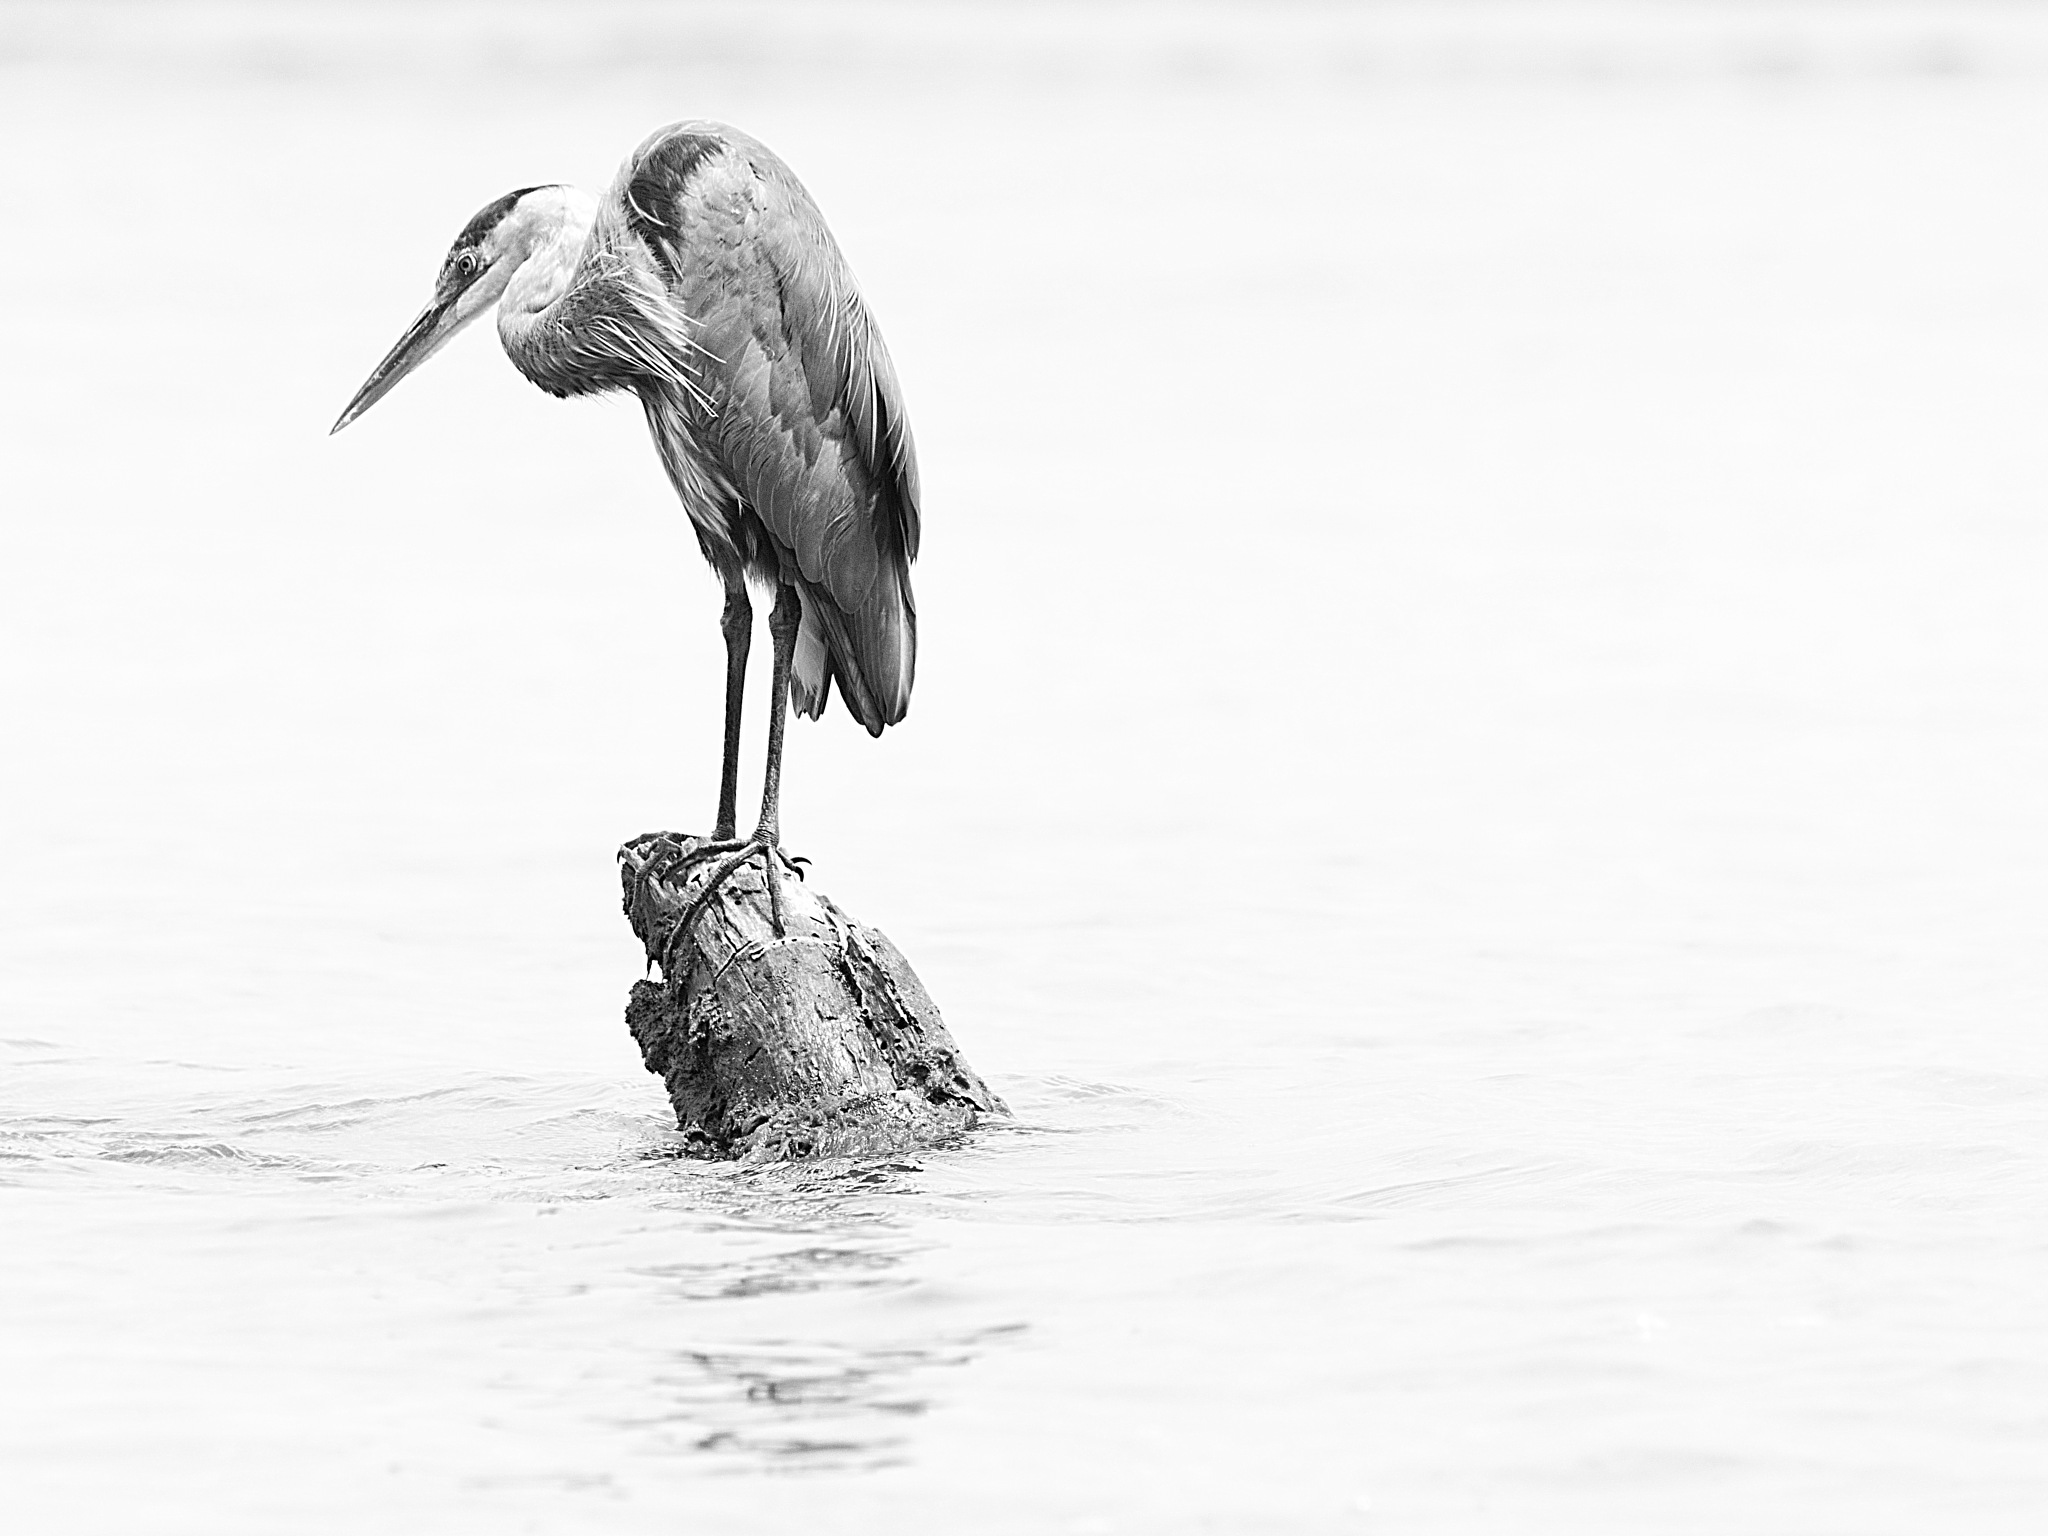 The heron by Marco Parenti